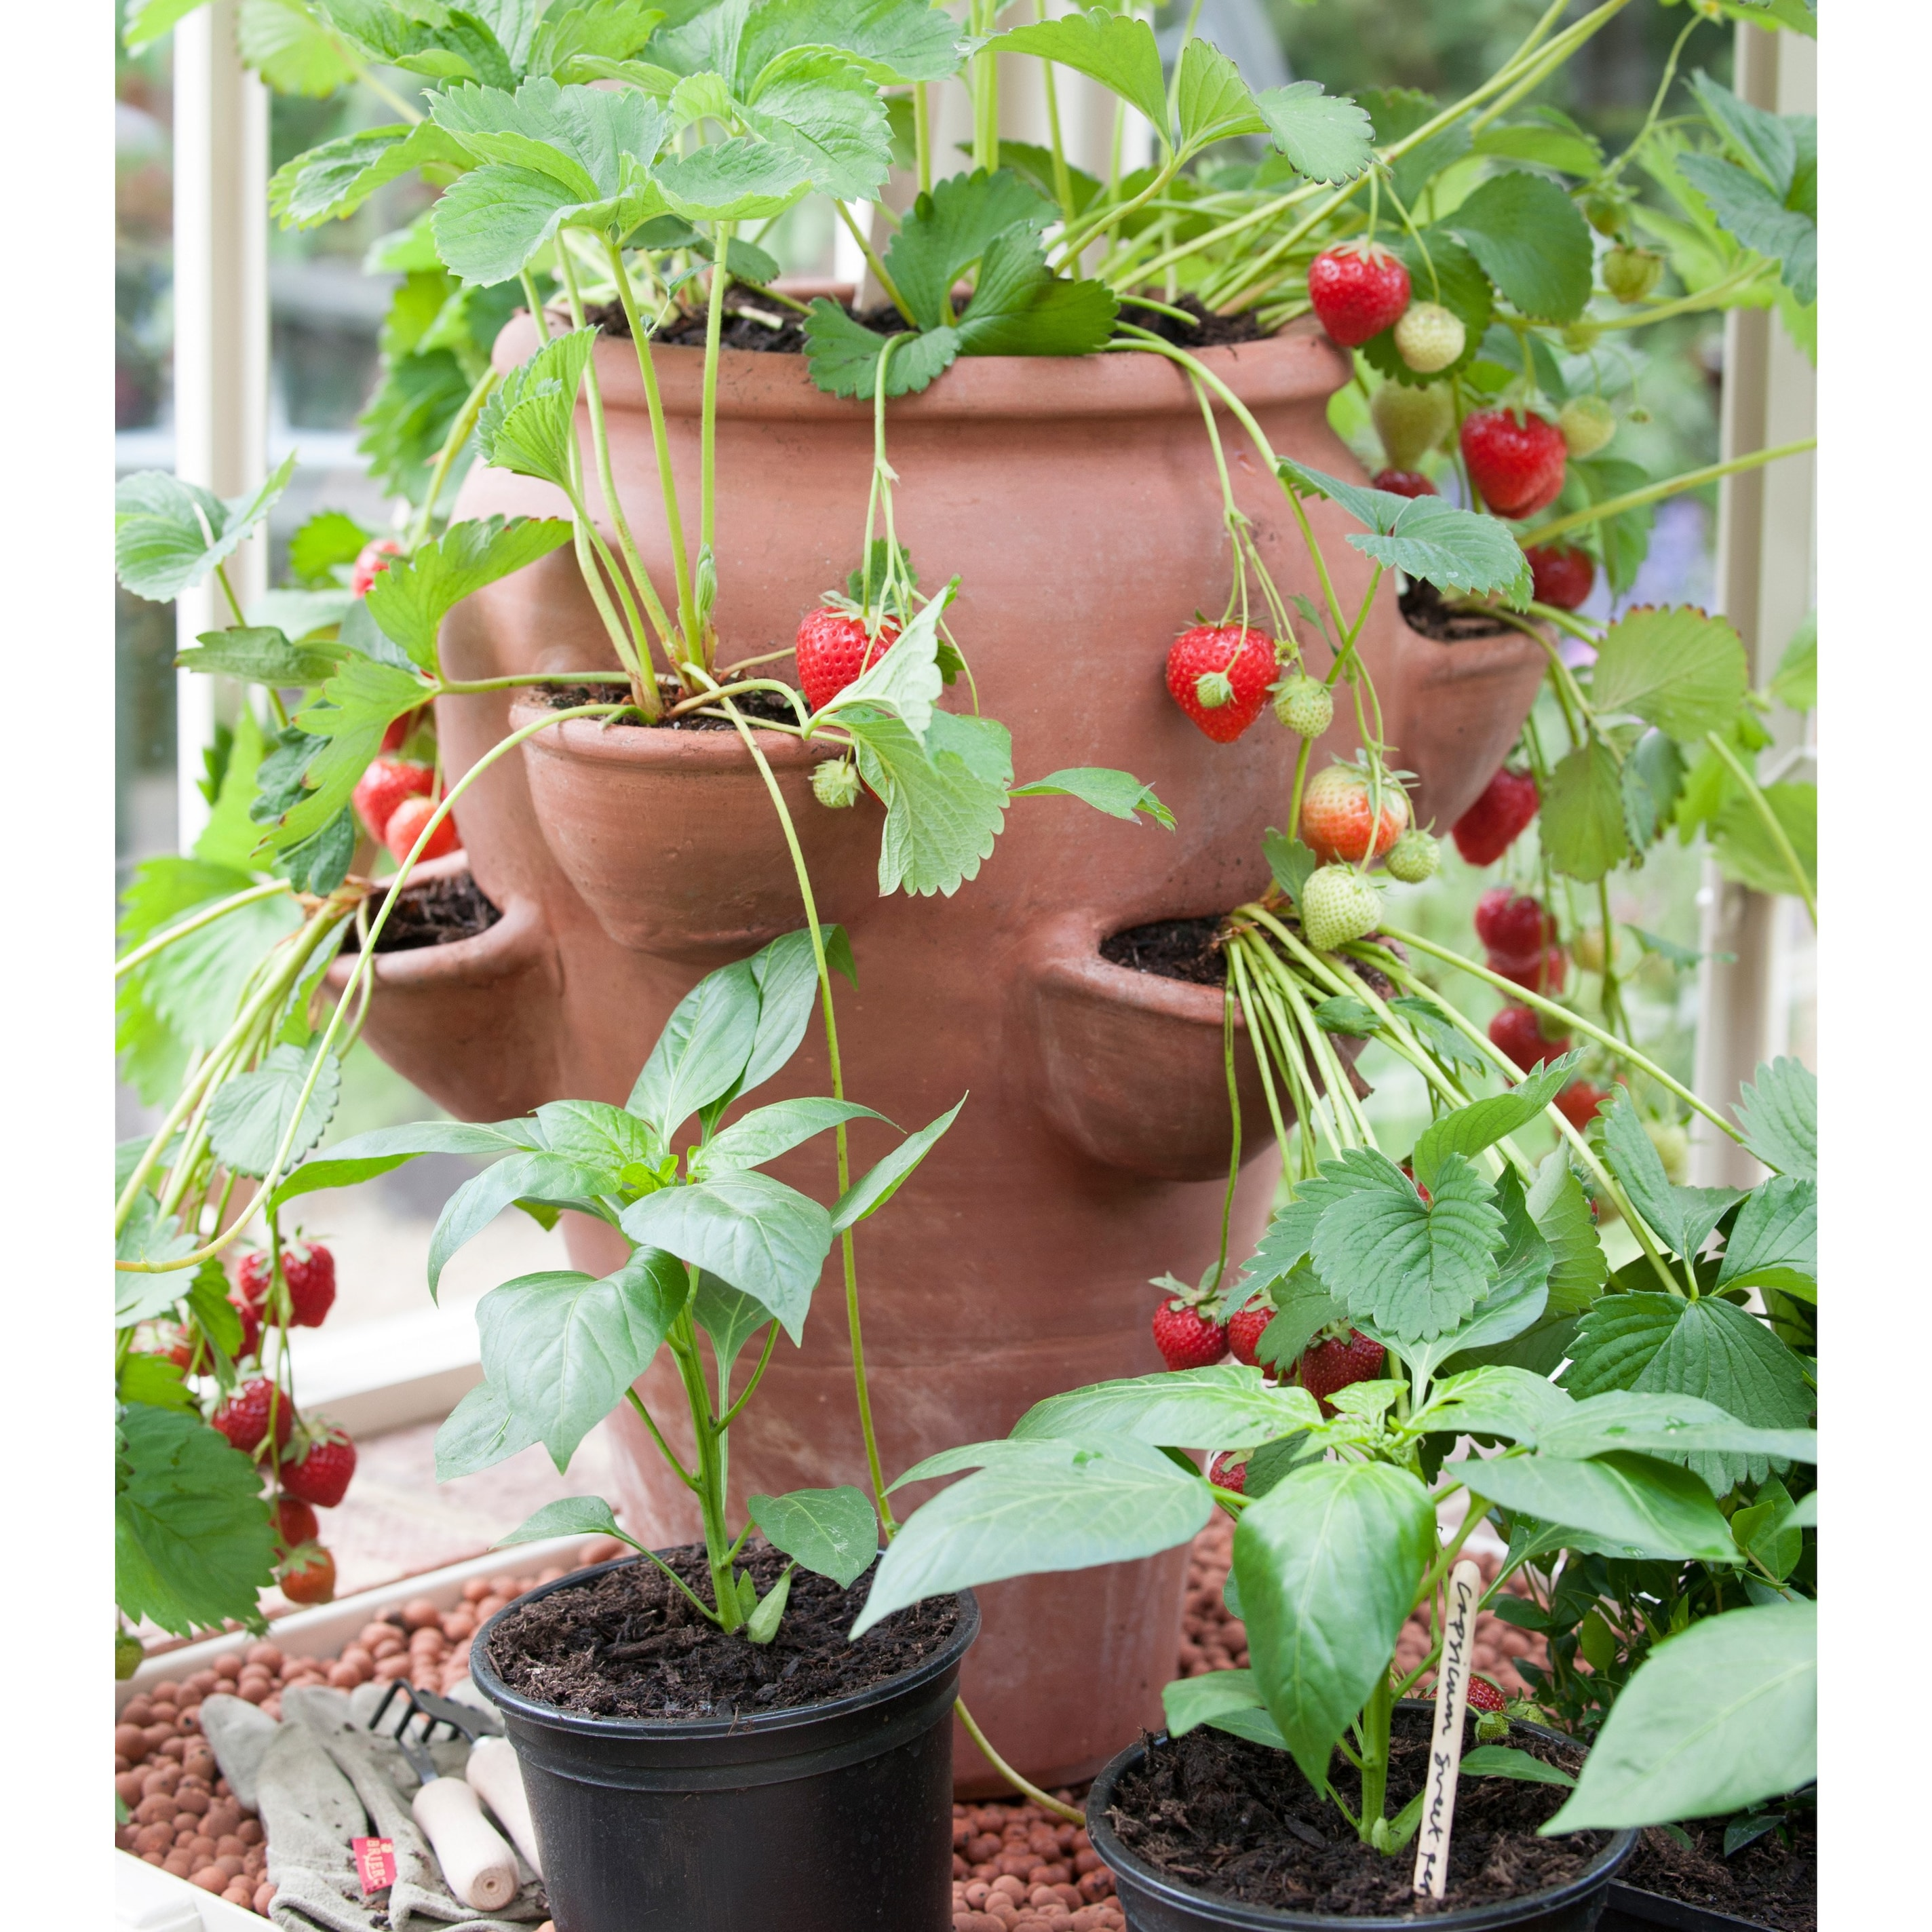 Kitchen Garden Planter: Buy Terracotta Strawberry Planter: Delivery By Waitrose